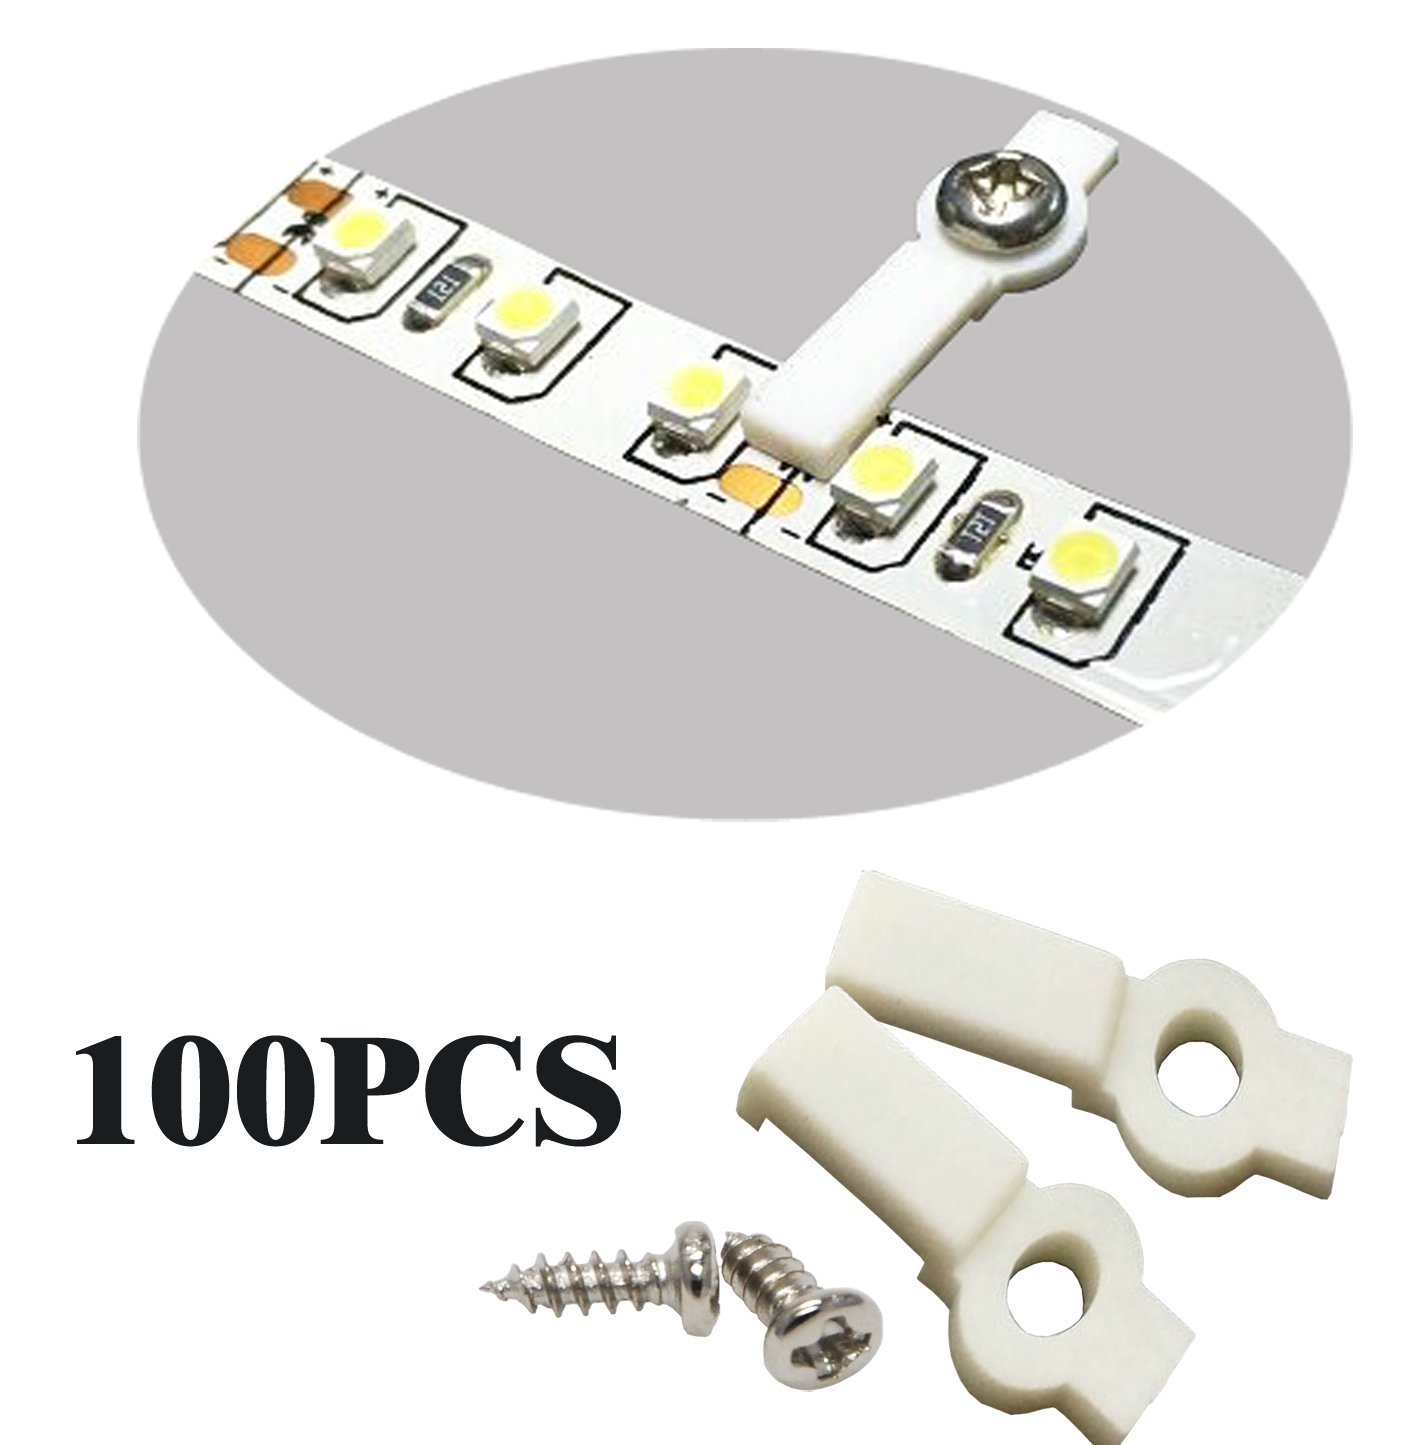 SpiritLED 100 Lots Strip Light Mounting Bracket Fixing Clip-One Side Fixing,Screws included (100, Hollow Distance 10.8mm (Ideal for strip width 10mm))